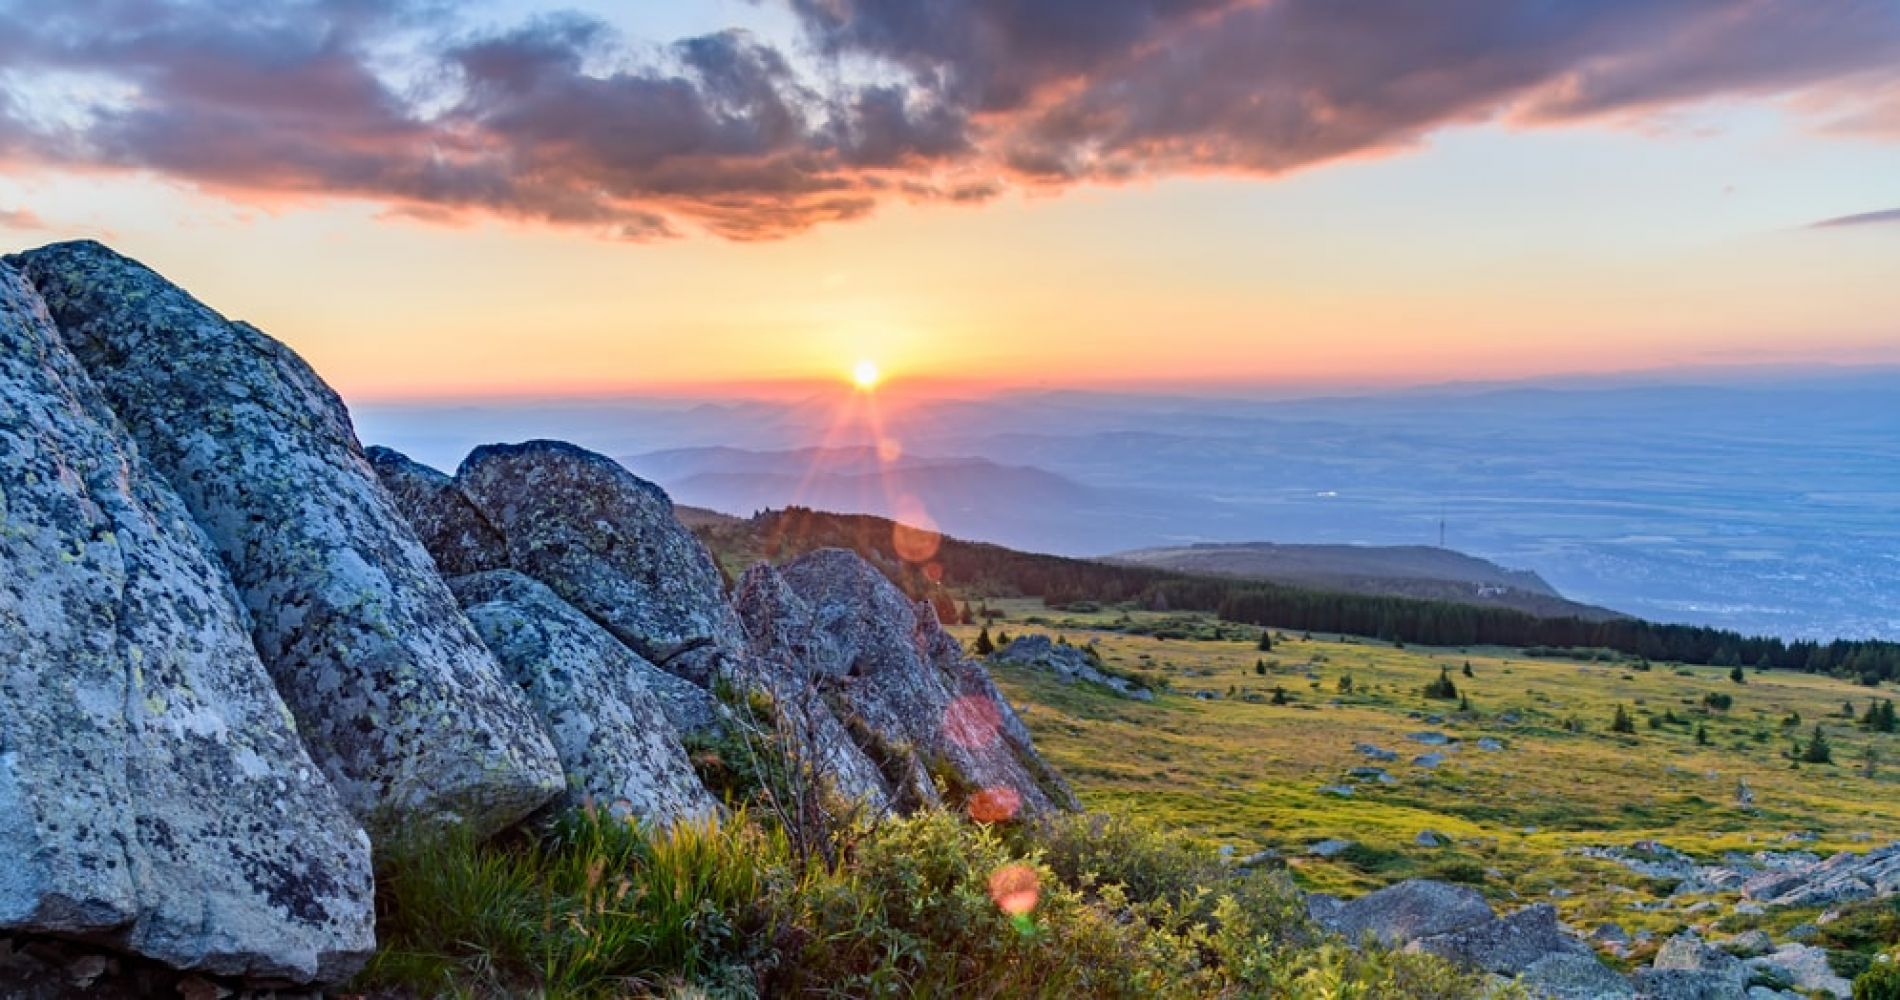 Hike Vitosha Mountain near Sofia